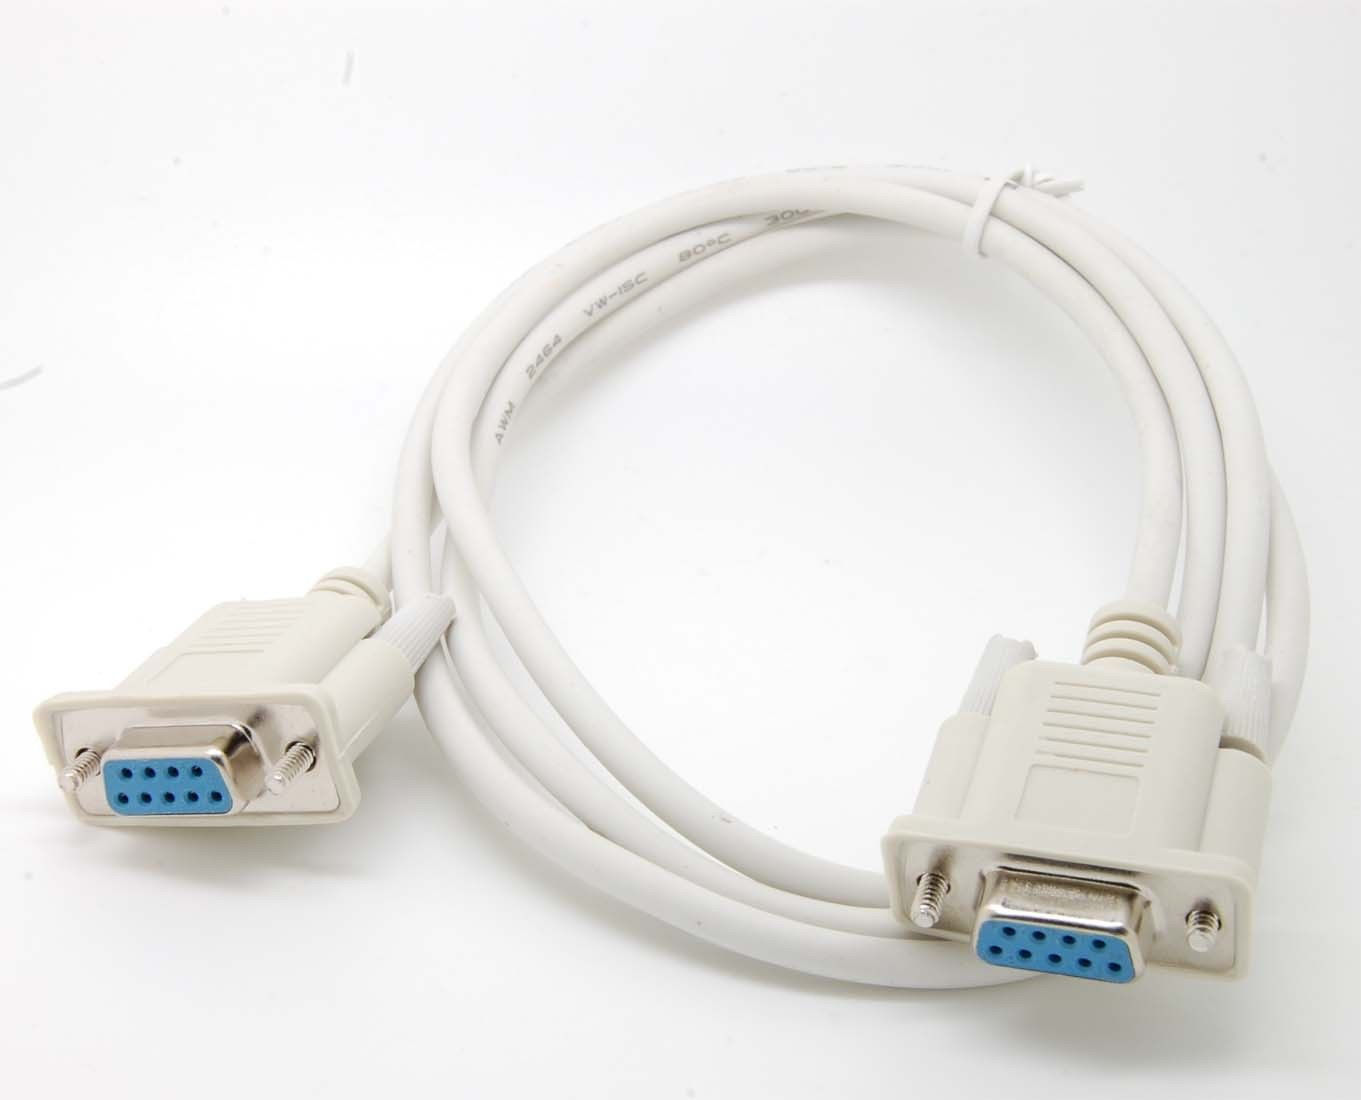 10pcs Serial RS232 Null Modem Cable Female to Female DB9 5ft direct connection